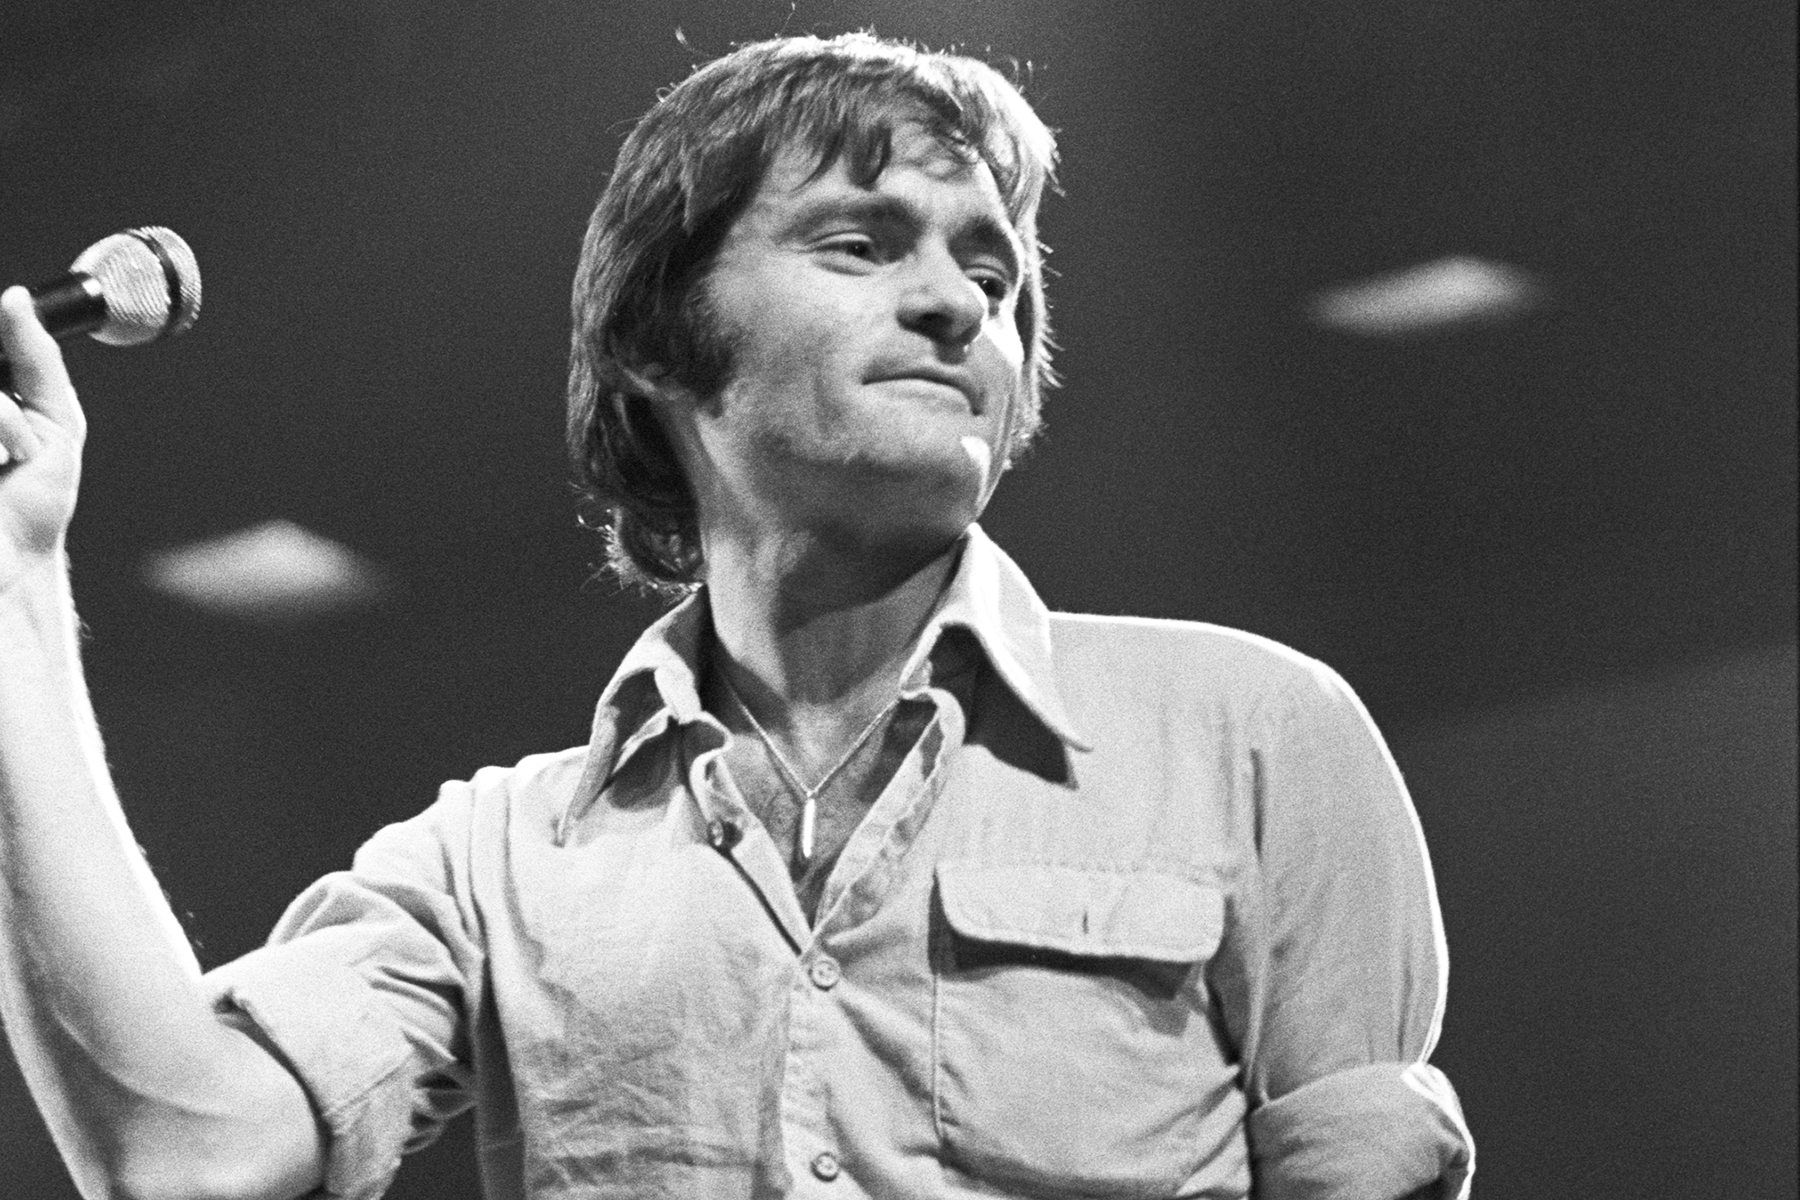 Jefferson Airplane Co-Founder Marty Balin Dead at 76